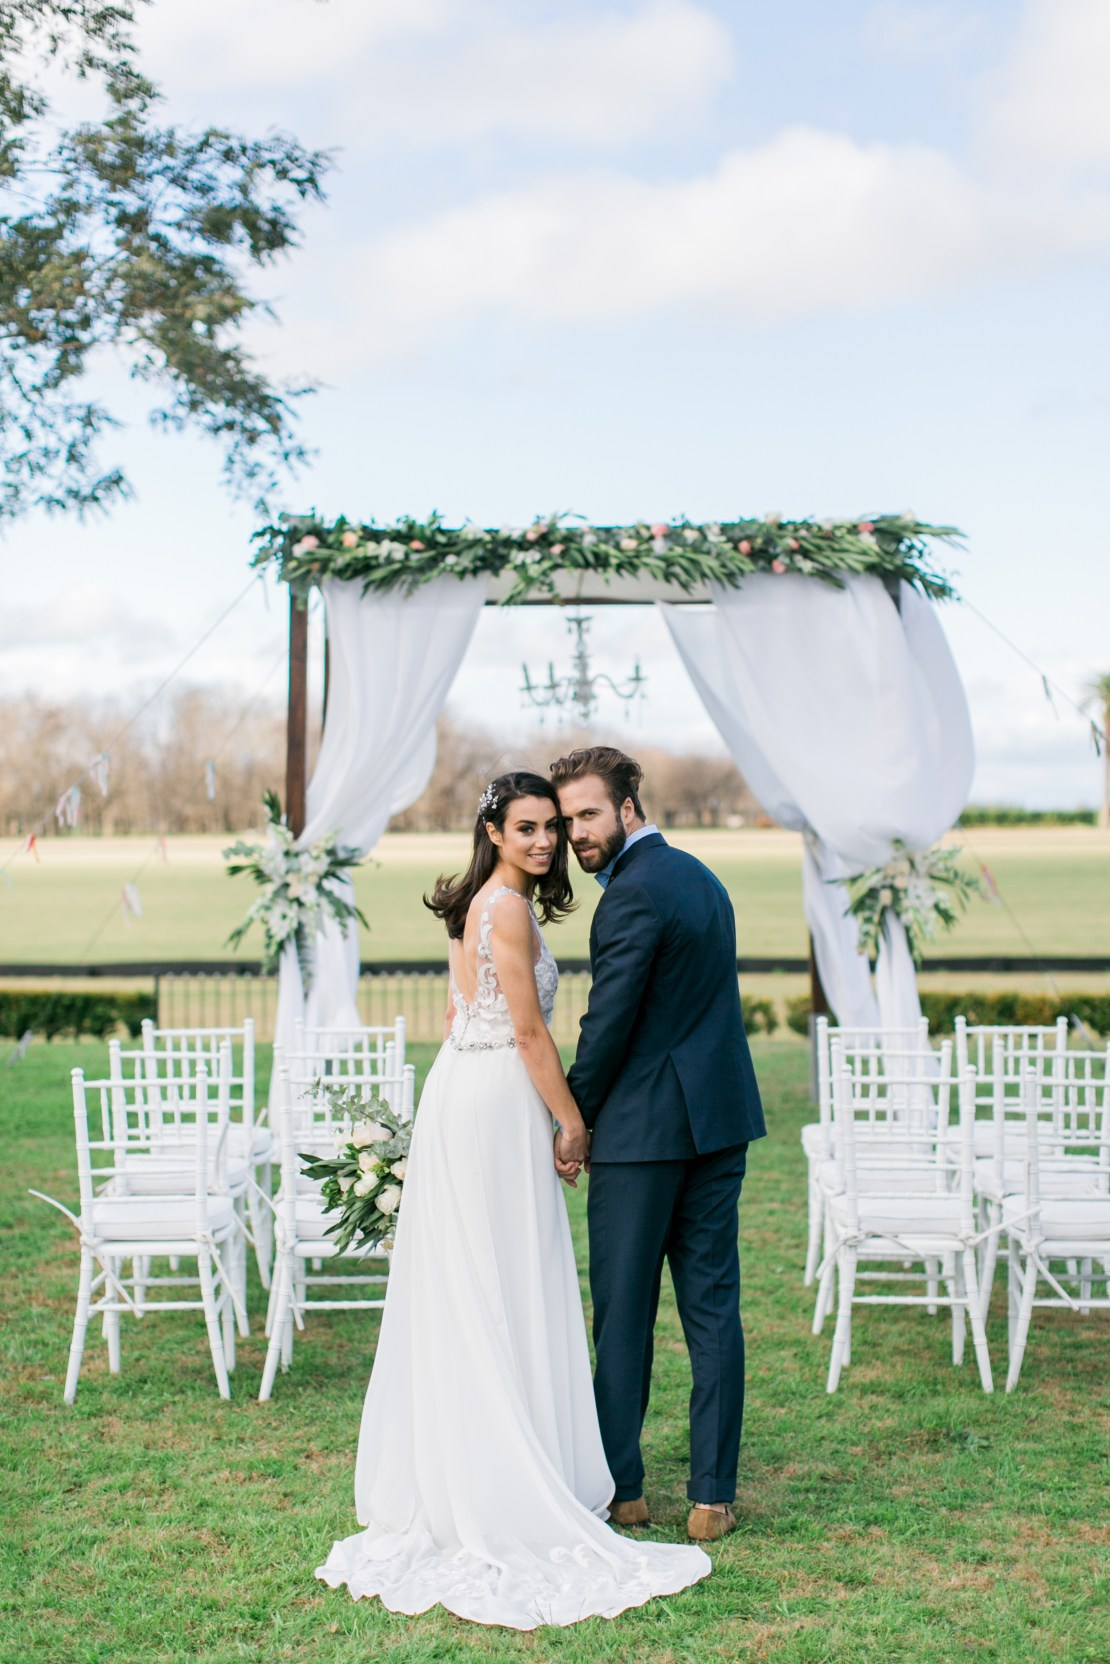 Equestrian-Luxe-Boho-Wedding-Inspiration-From-Argentina-Steven-Leyva-Photography-Burlap-Bordeaux-68.jpg